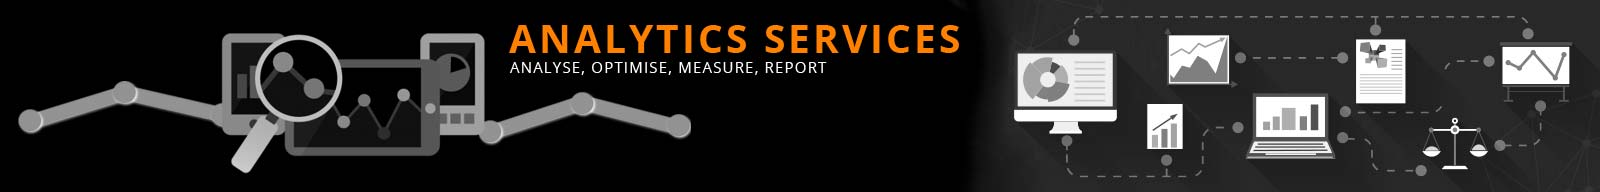 Analytics Services iMz Media Solutions